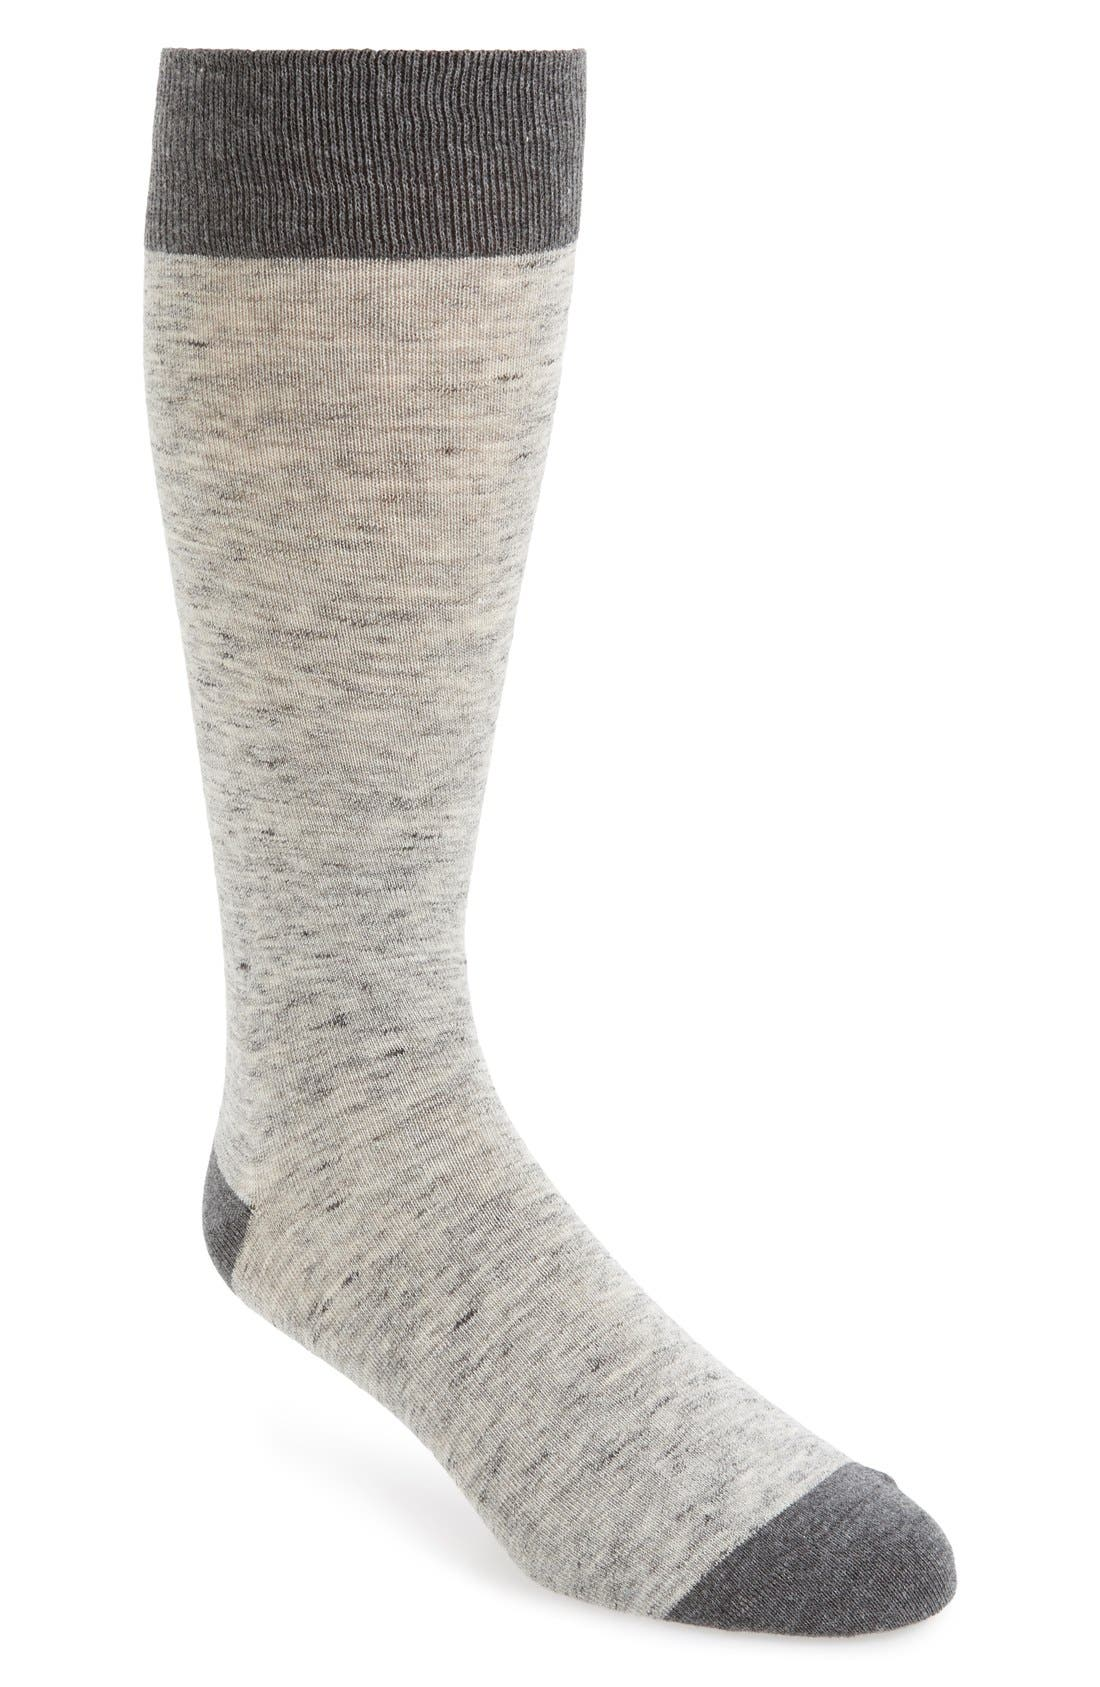 'Marle' Socks,                             Main thumbnail 1, color,                             020